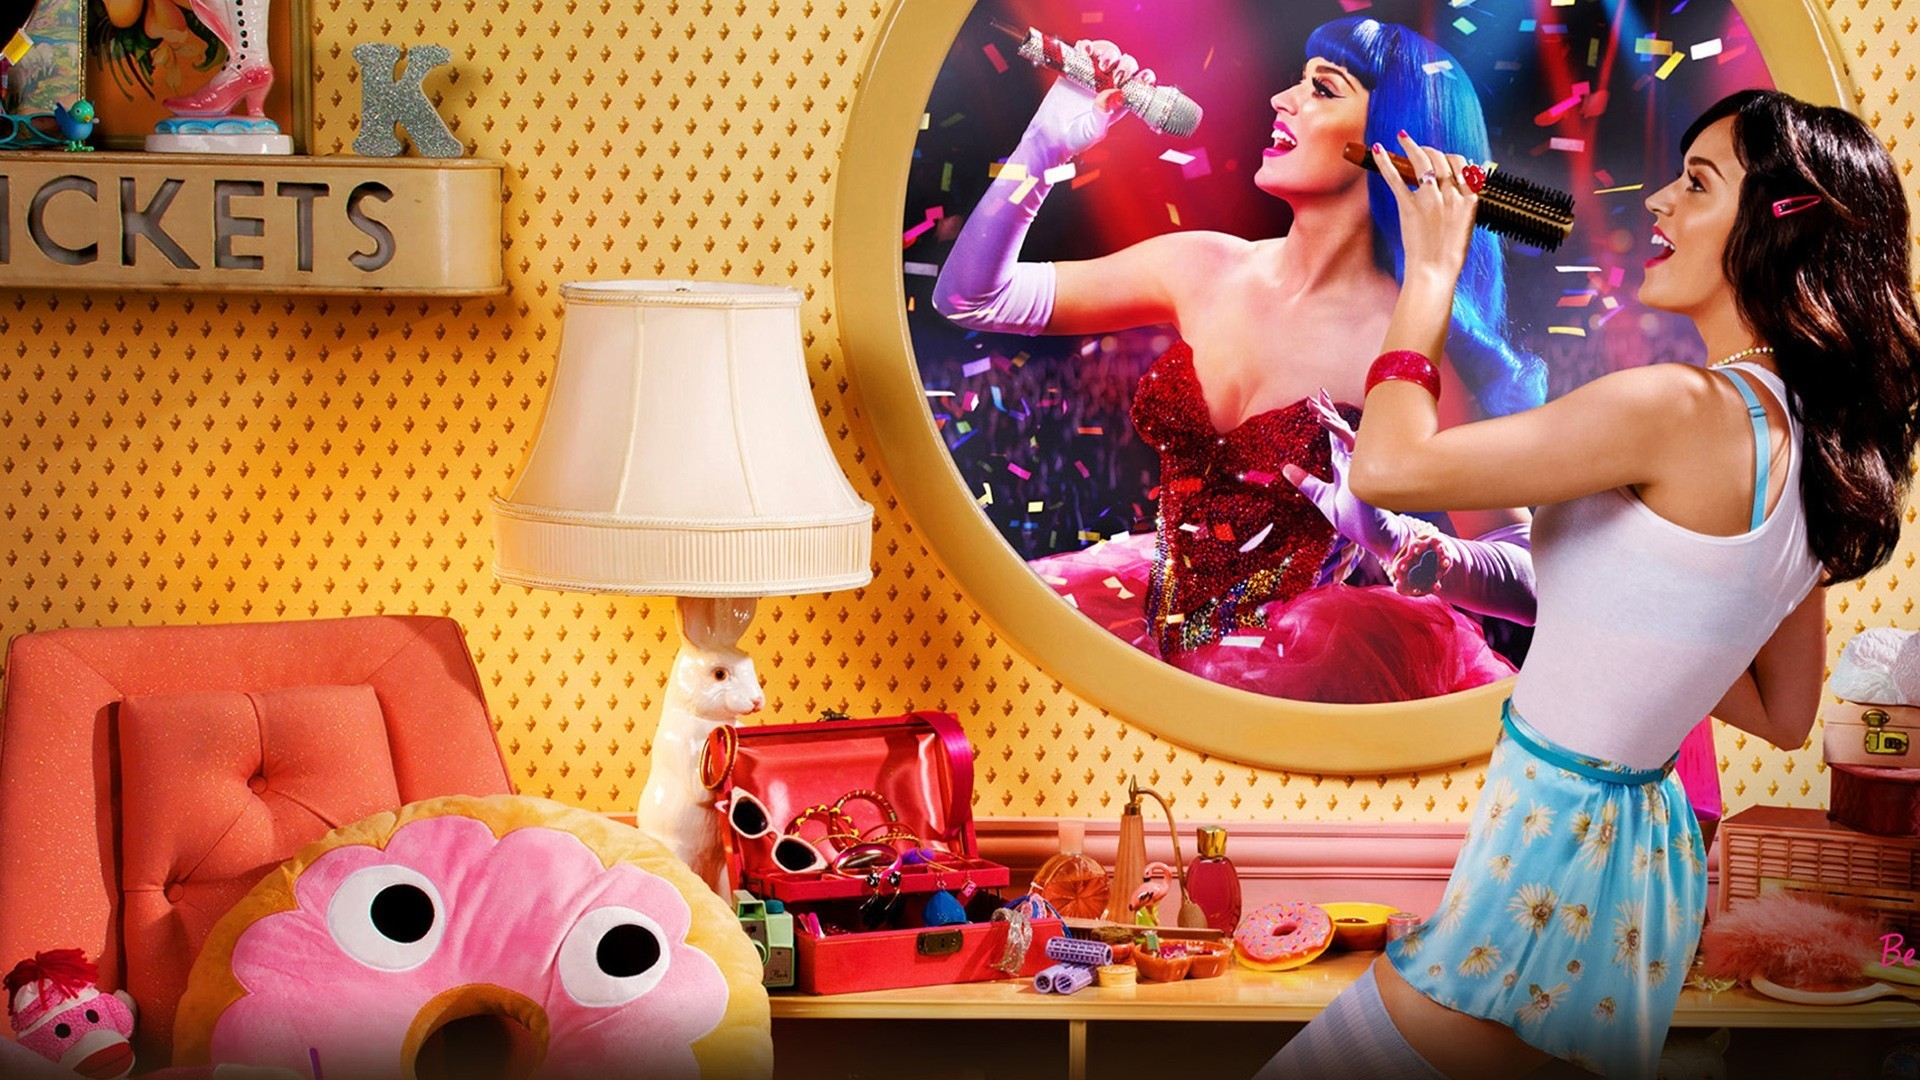 Music – Katy Perry Wallpaper